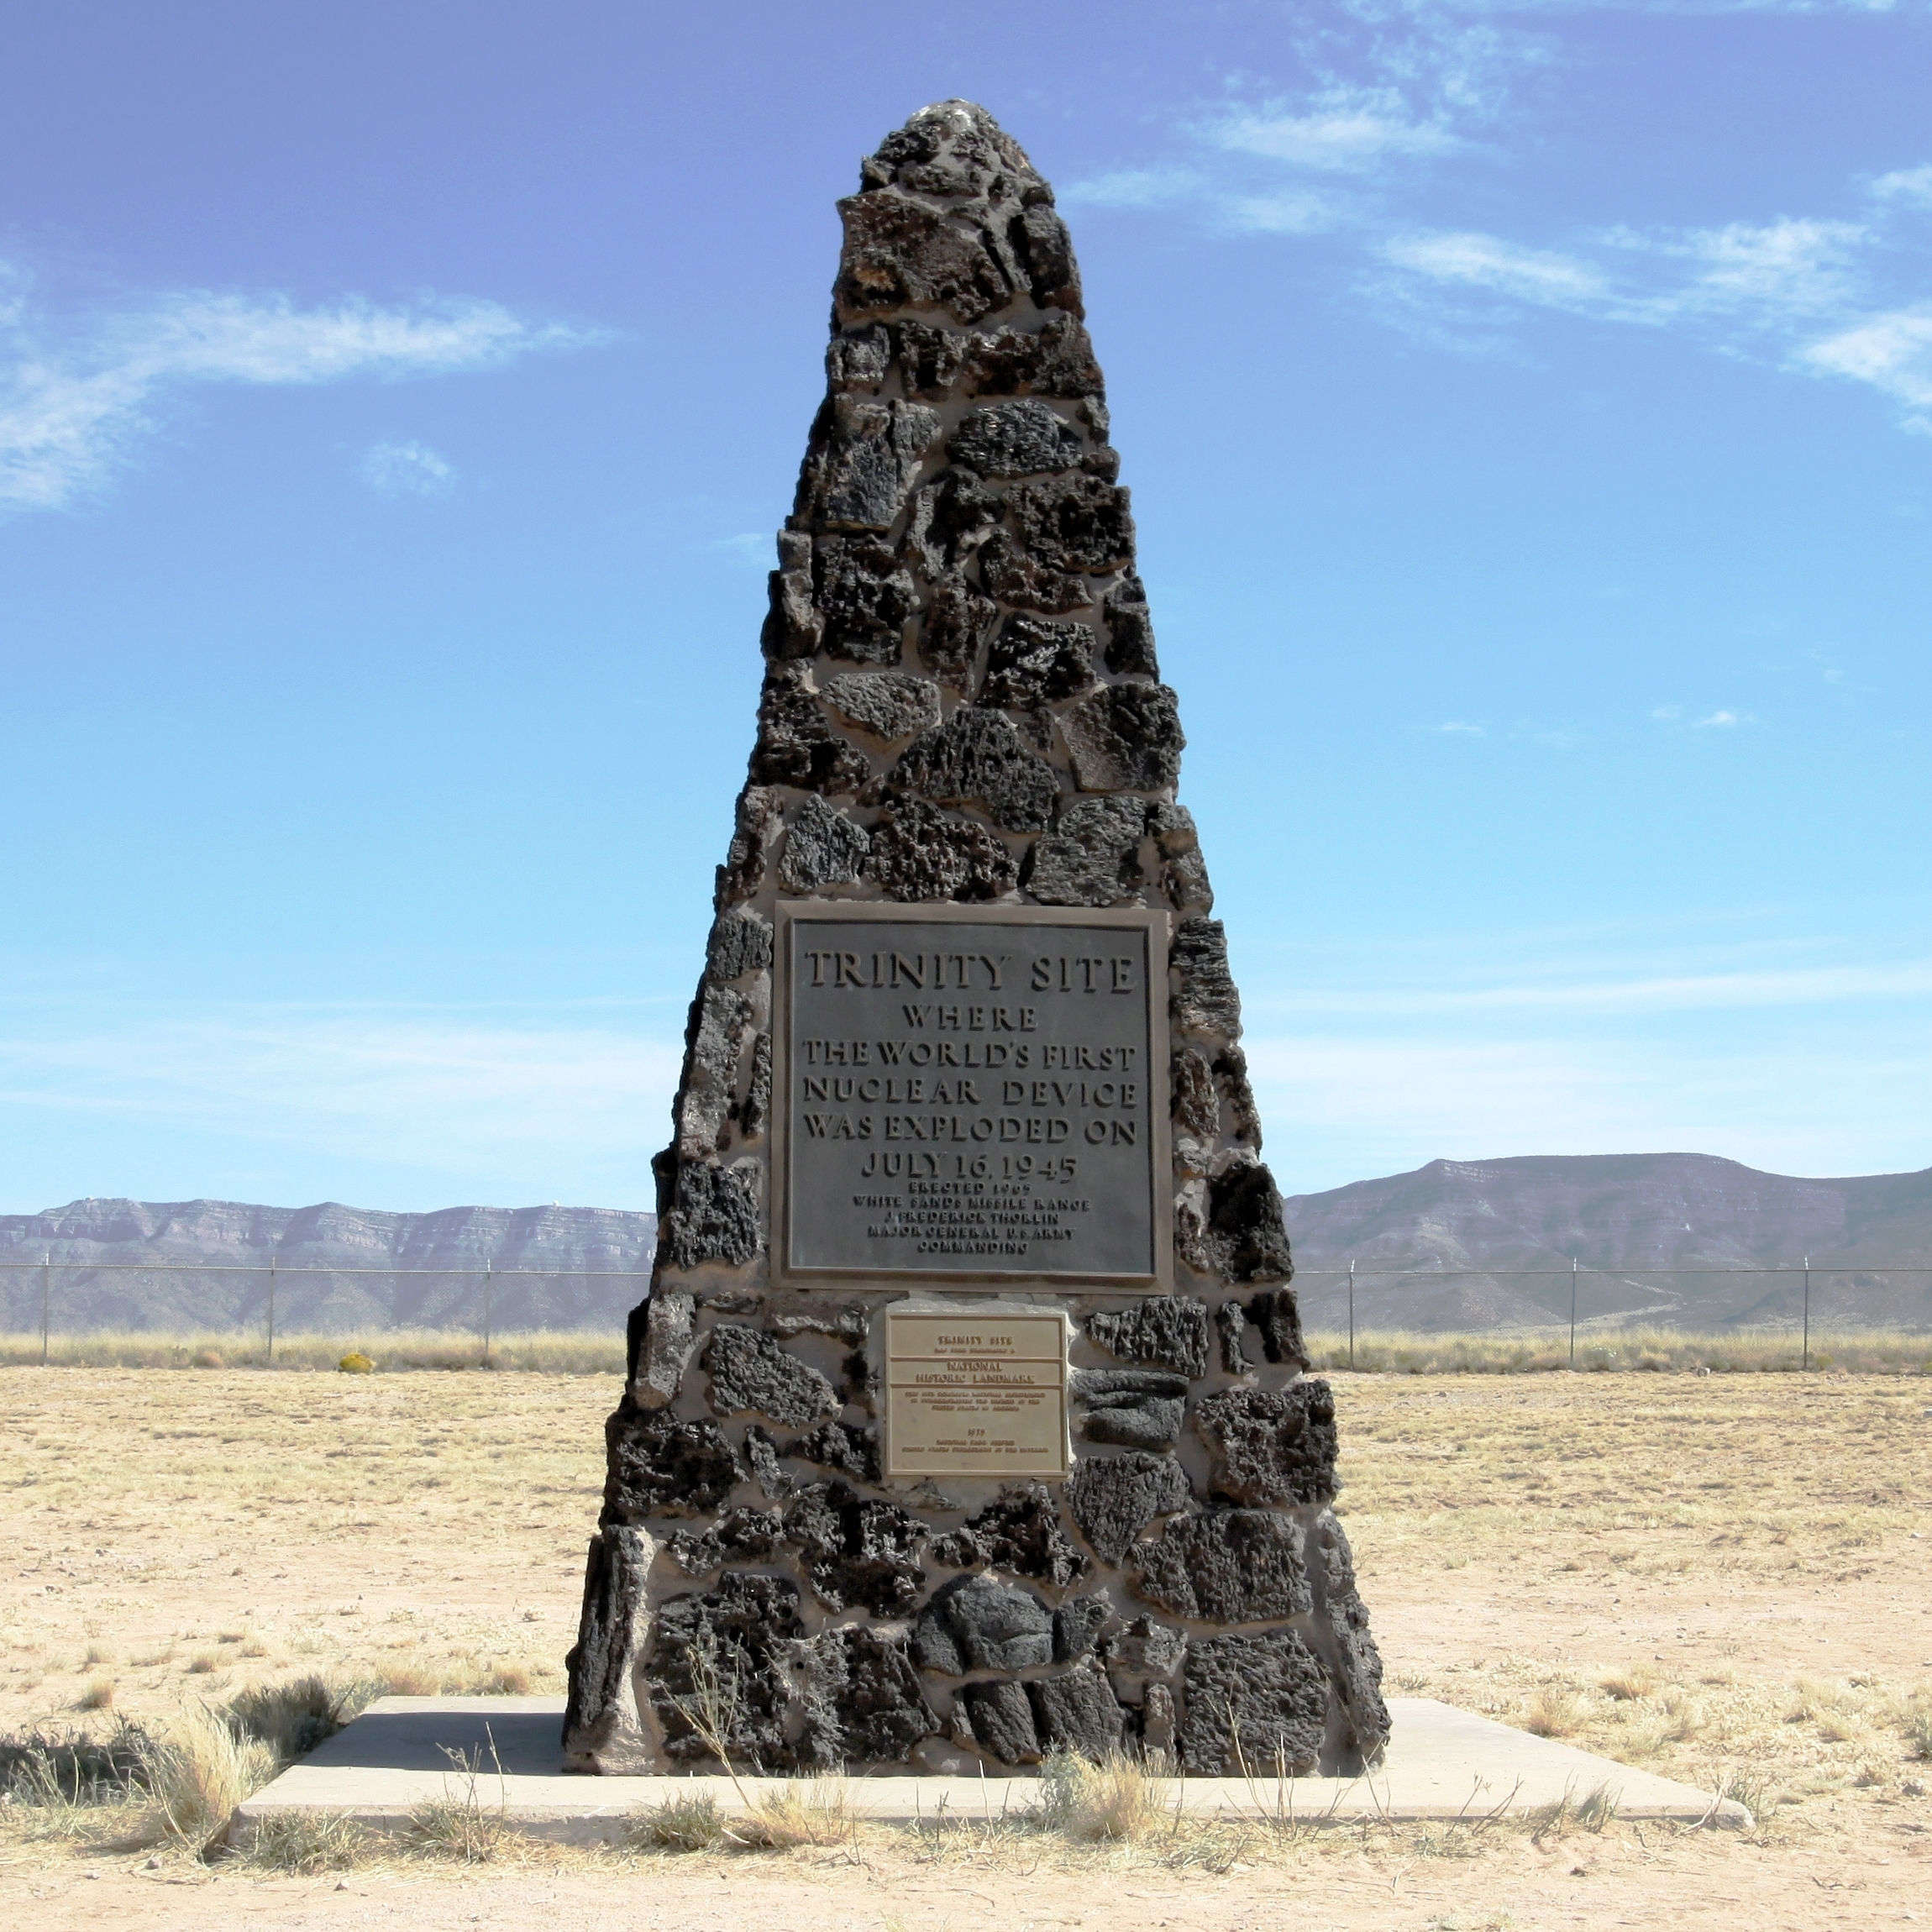 2ba411f8996648519de3_Trinity_Site_Obelisk_National_Historic_Landmark.jpg